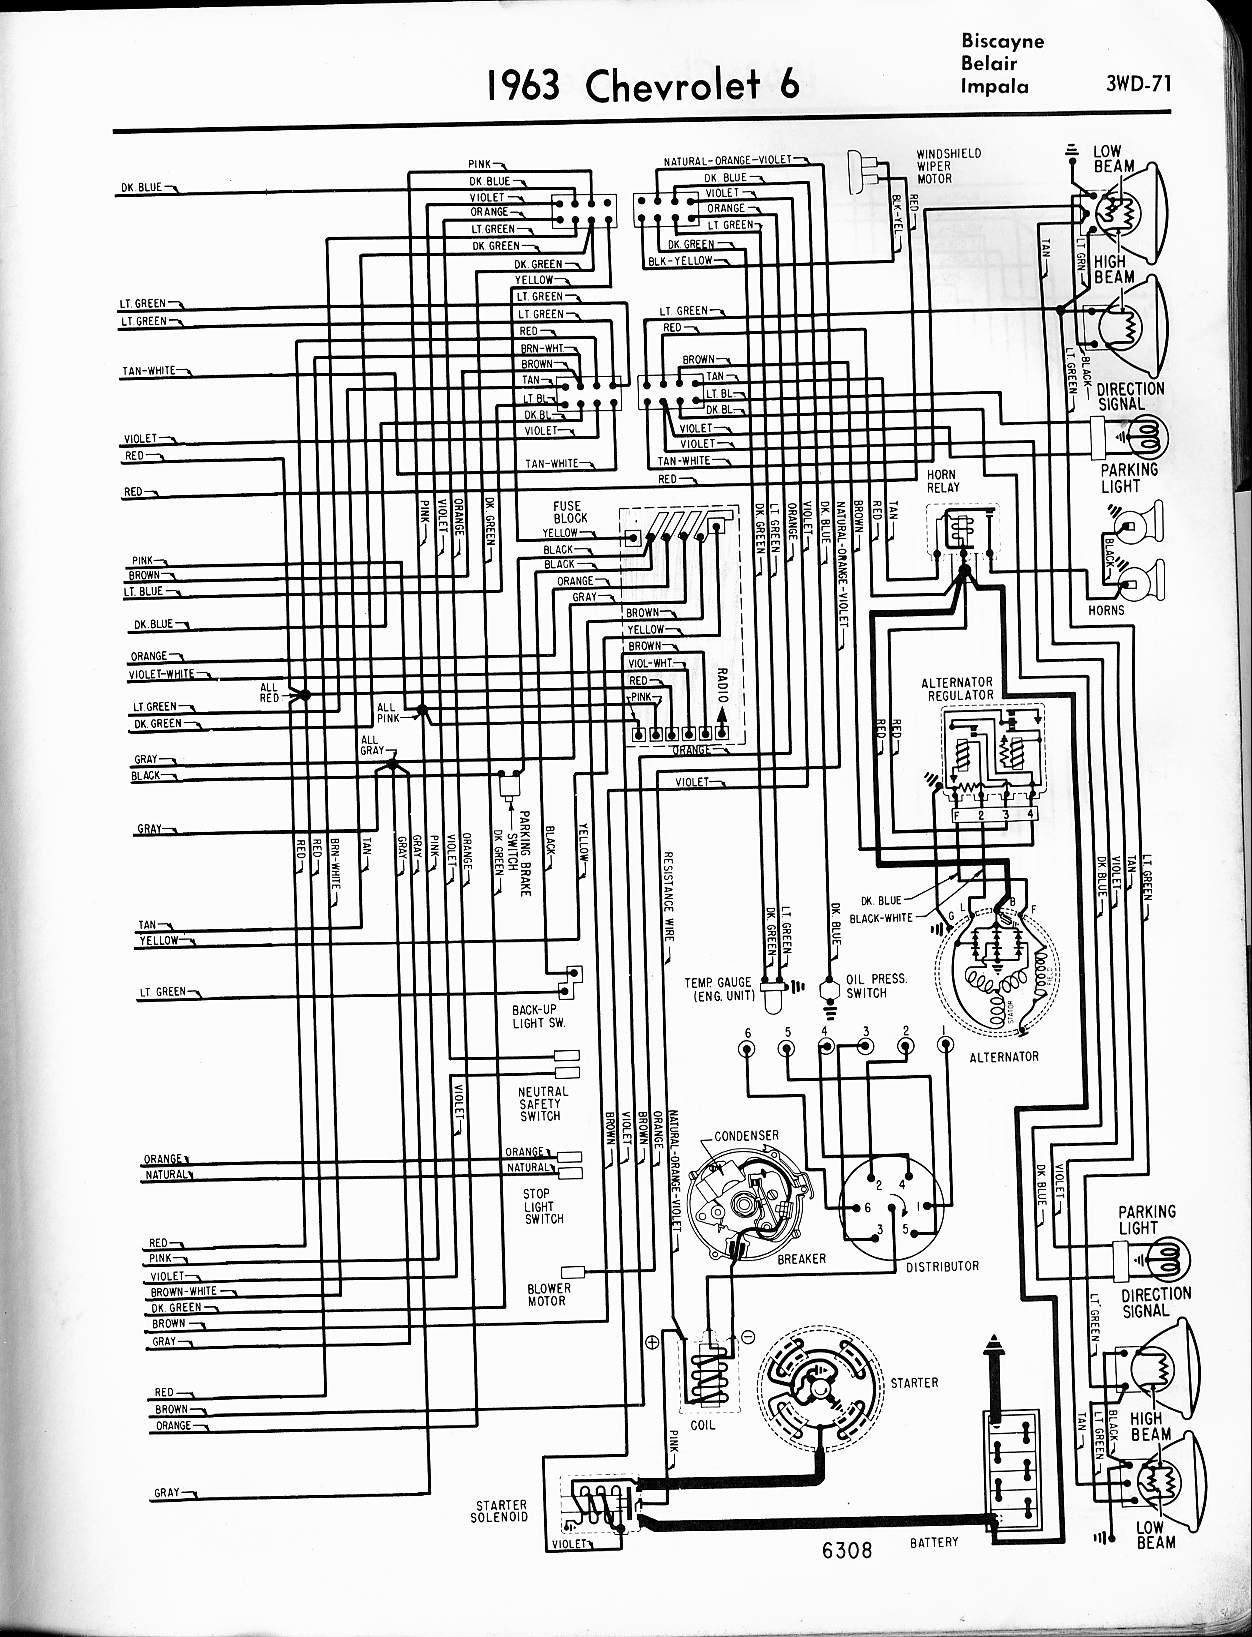 1965 impala wiring diagram   26 wiring diagram images